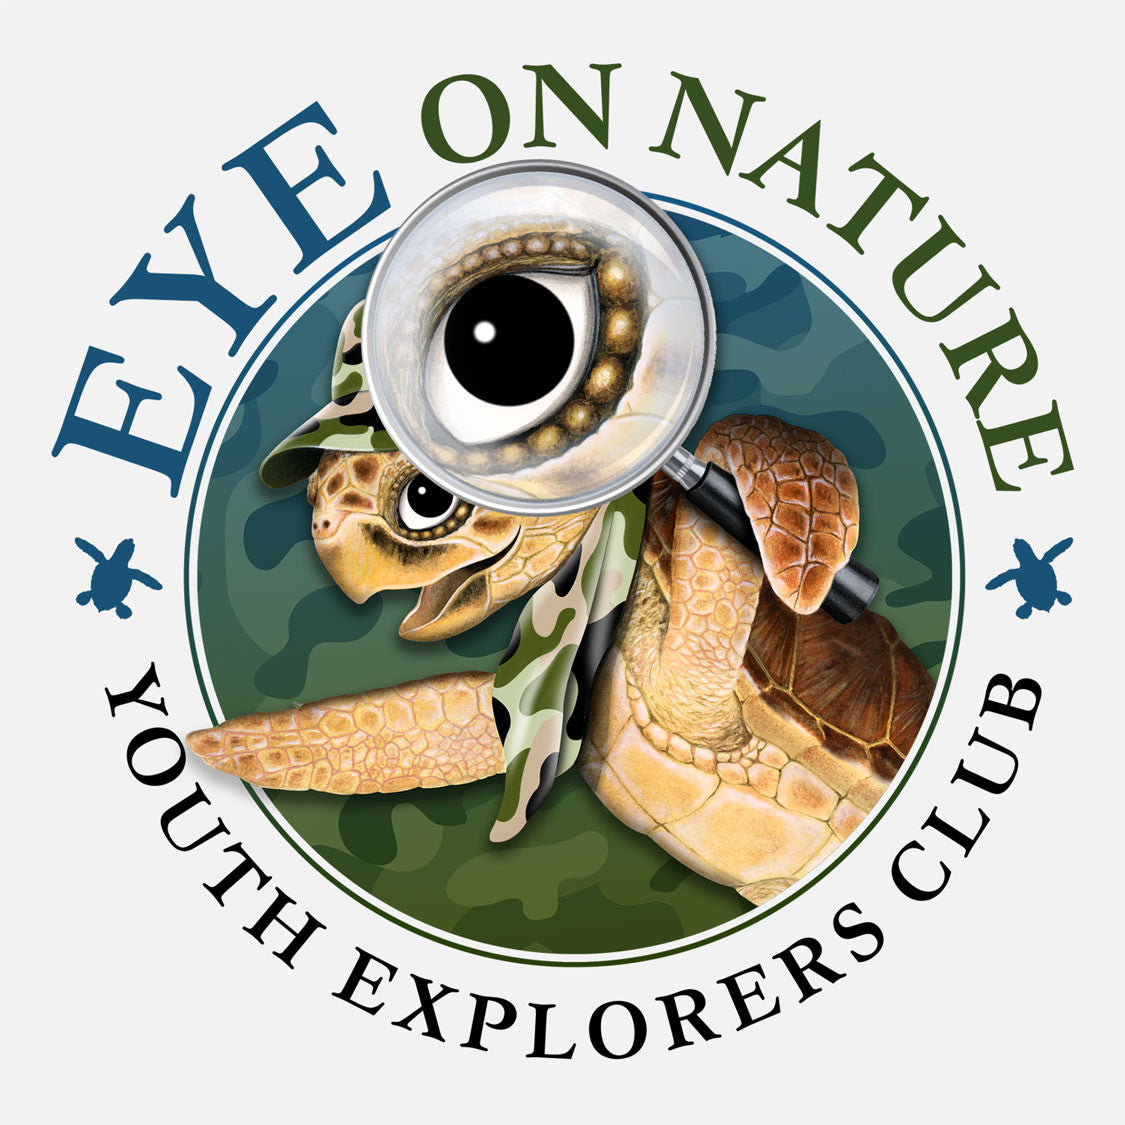 The Eye on Nature Youth Explorer's Club introduces children to the local wildlife and environment by taking them on a series of native adventures. The logo is a whimsical depiction of a sea turtle with a magnifying glass.